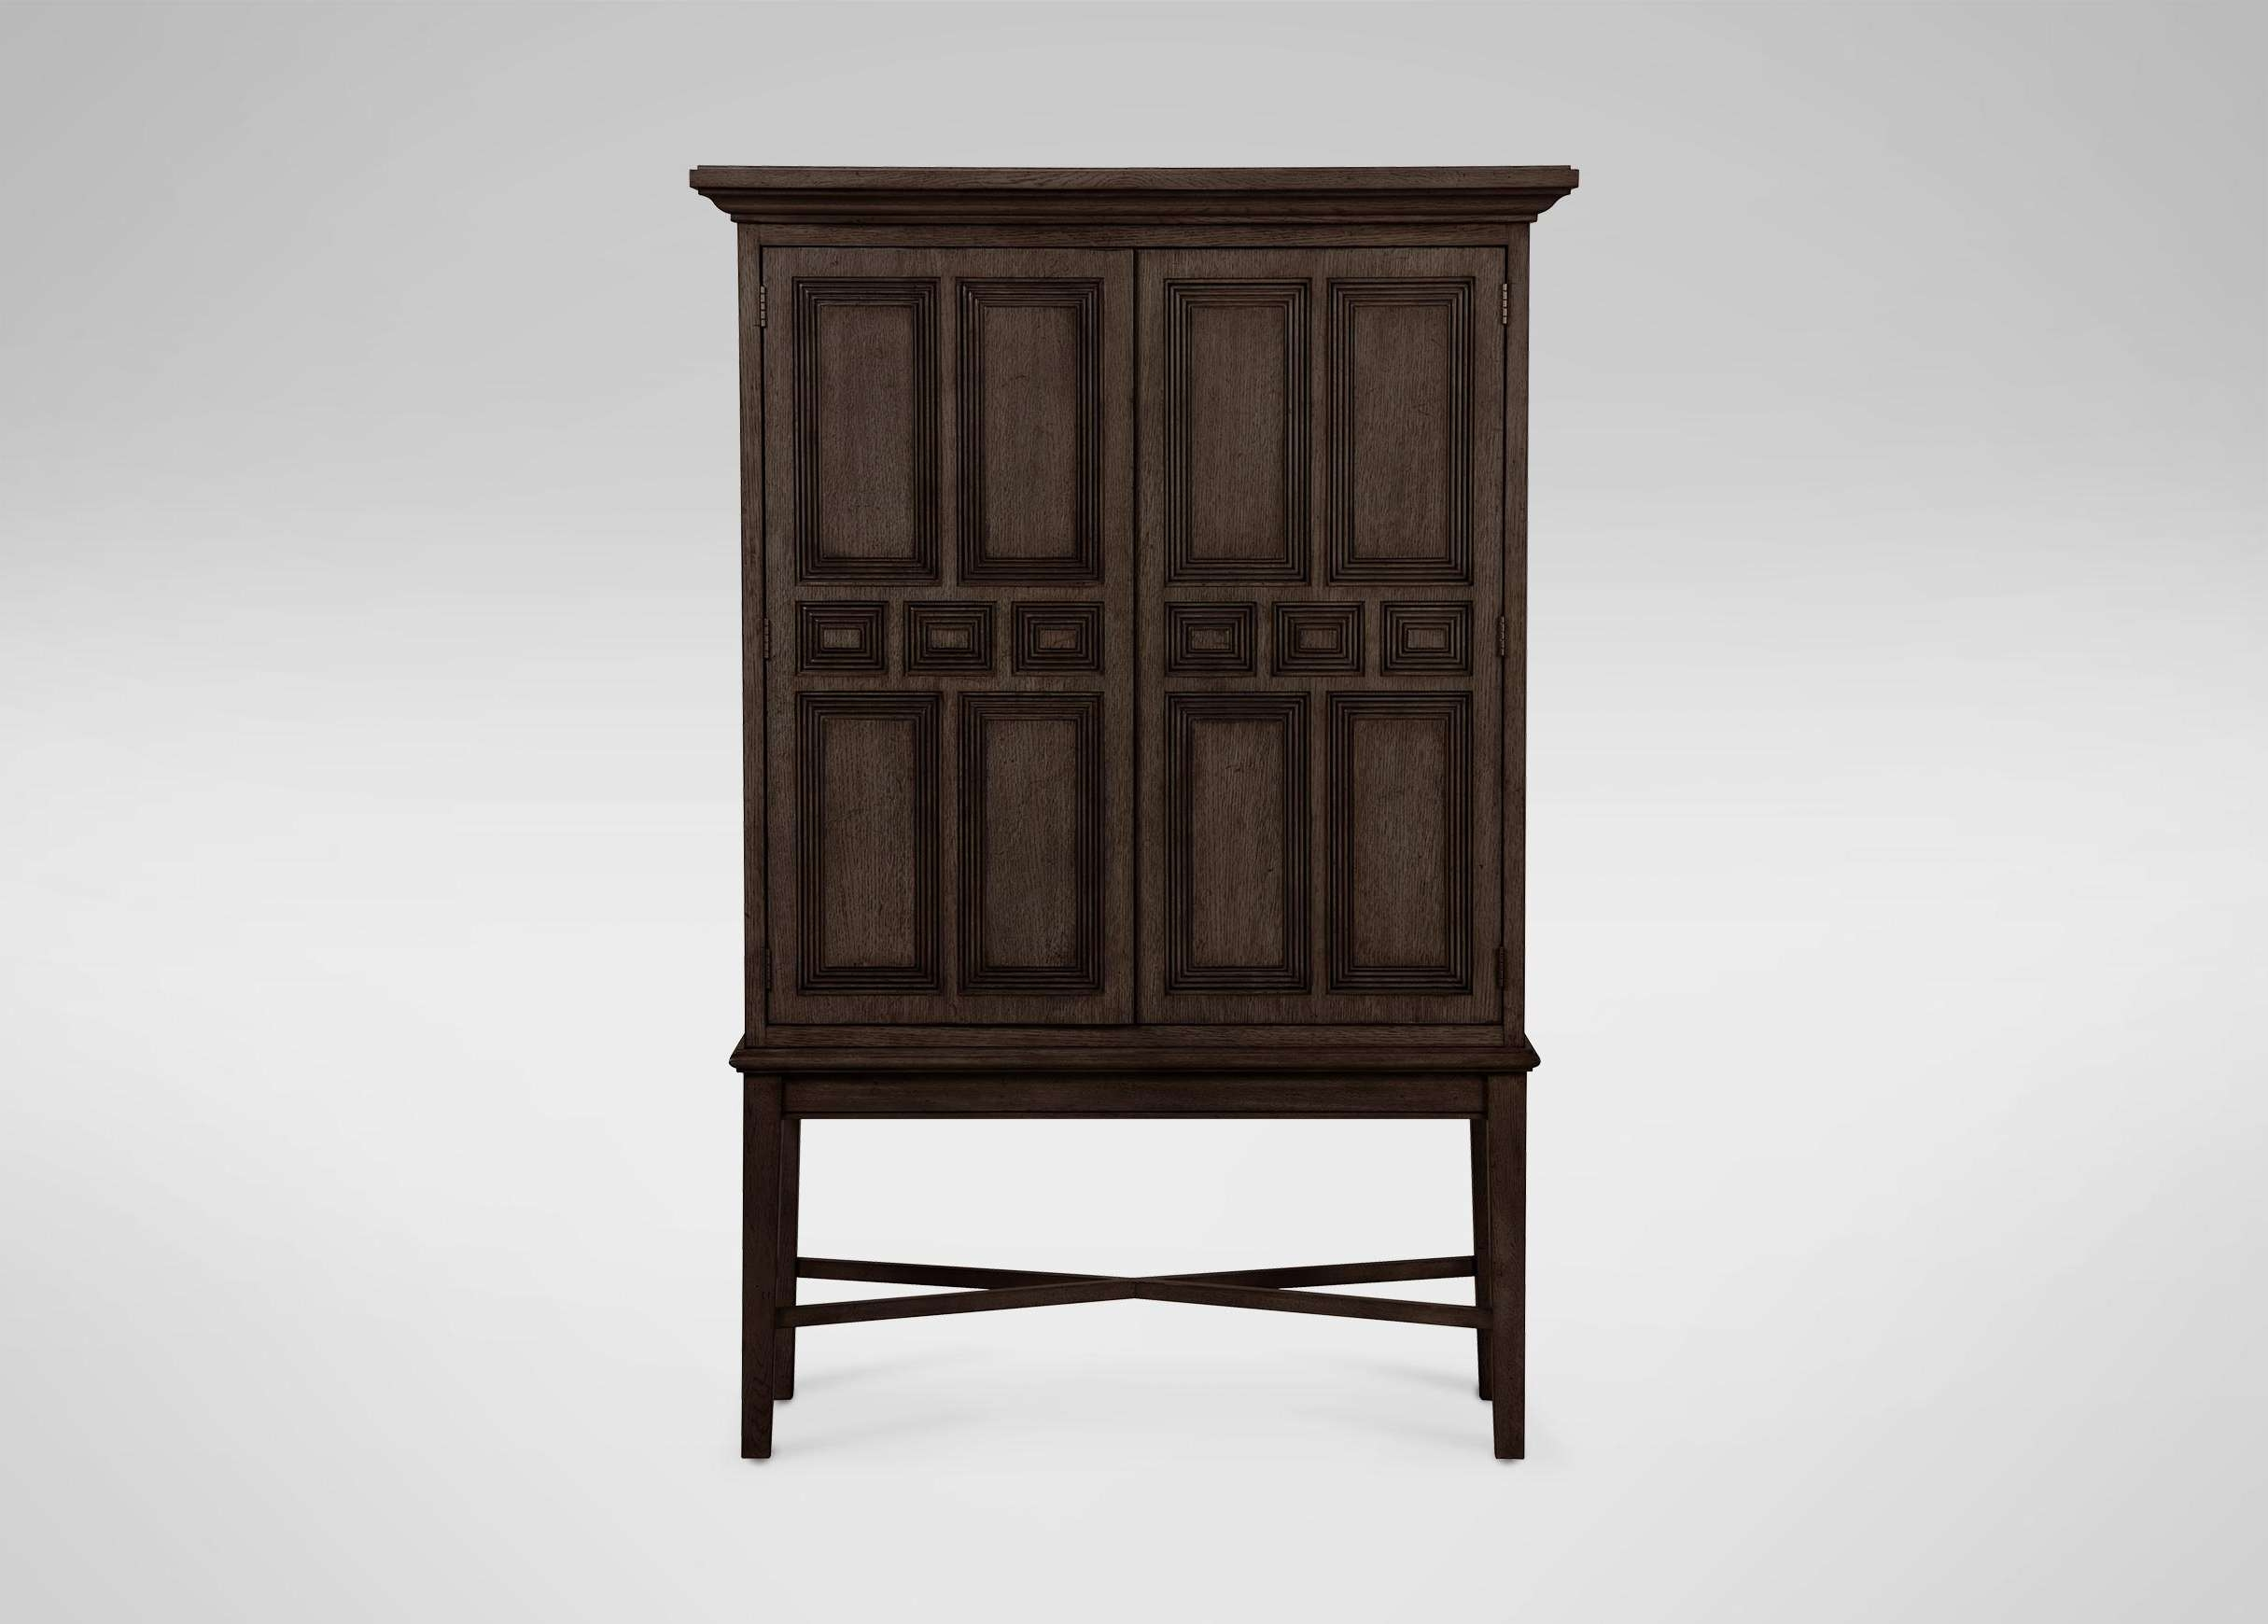 Shop Buffet Storage, Sideboards & Servers | Ethan Allen Intended For Buffets And Sideboards (View 13 of 20)